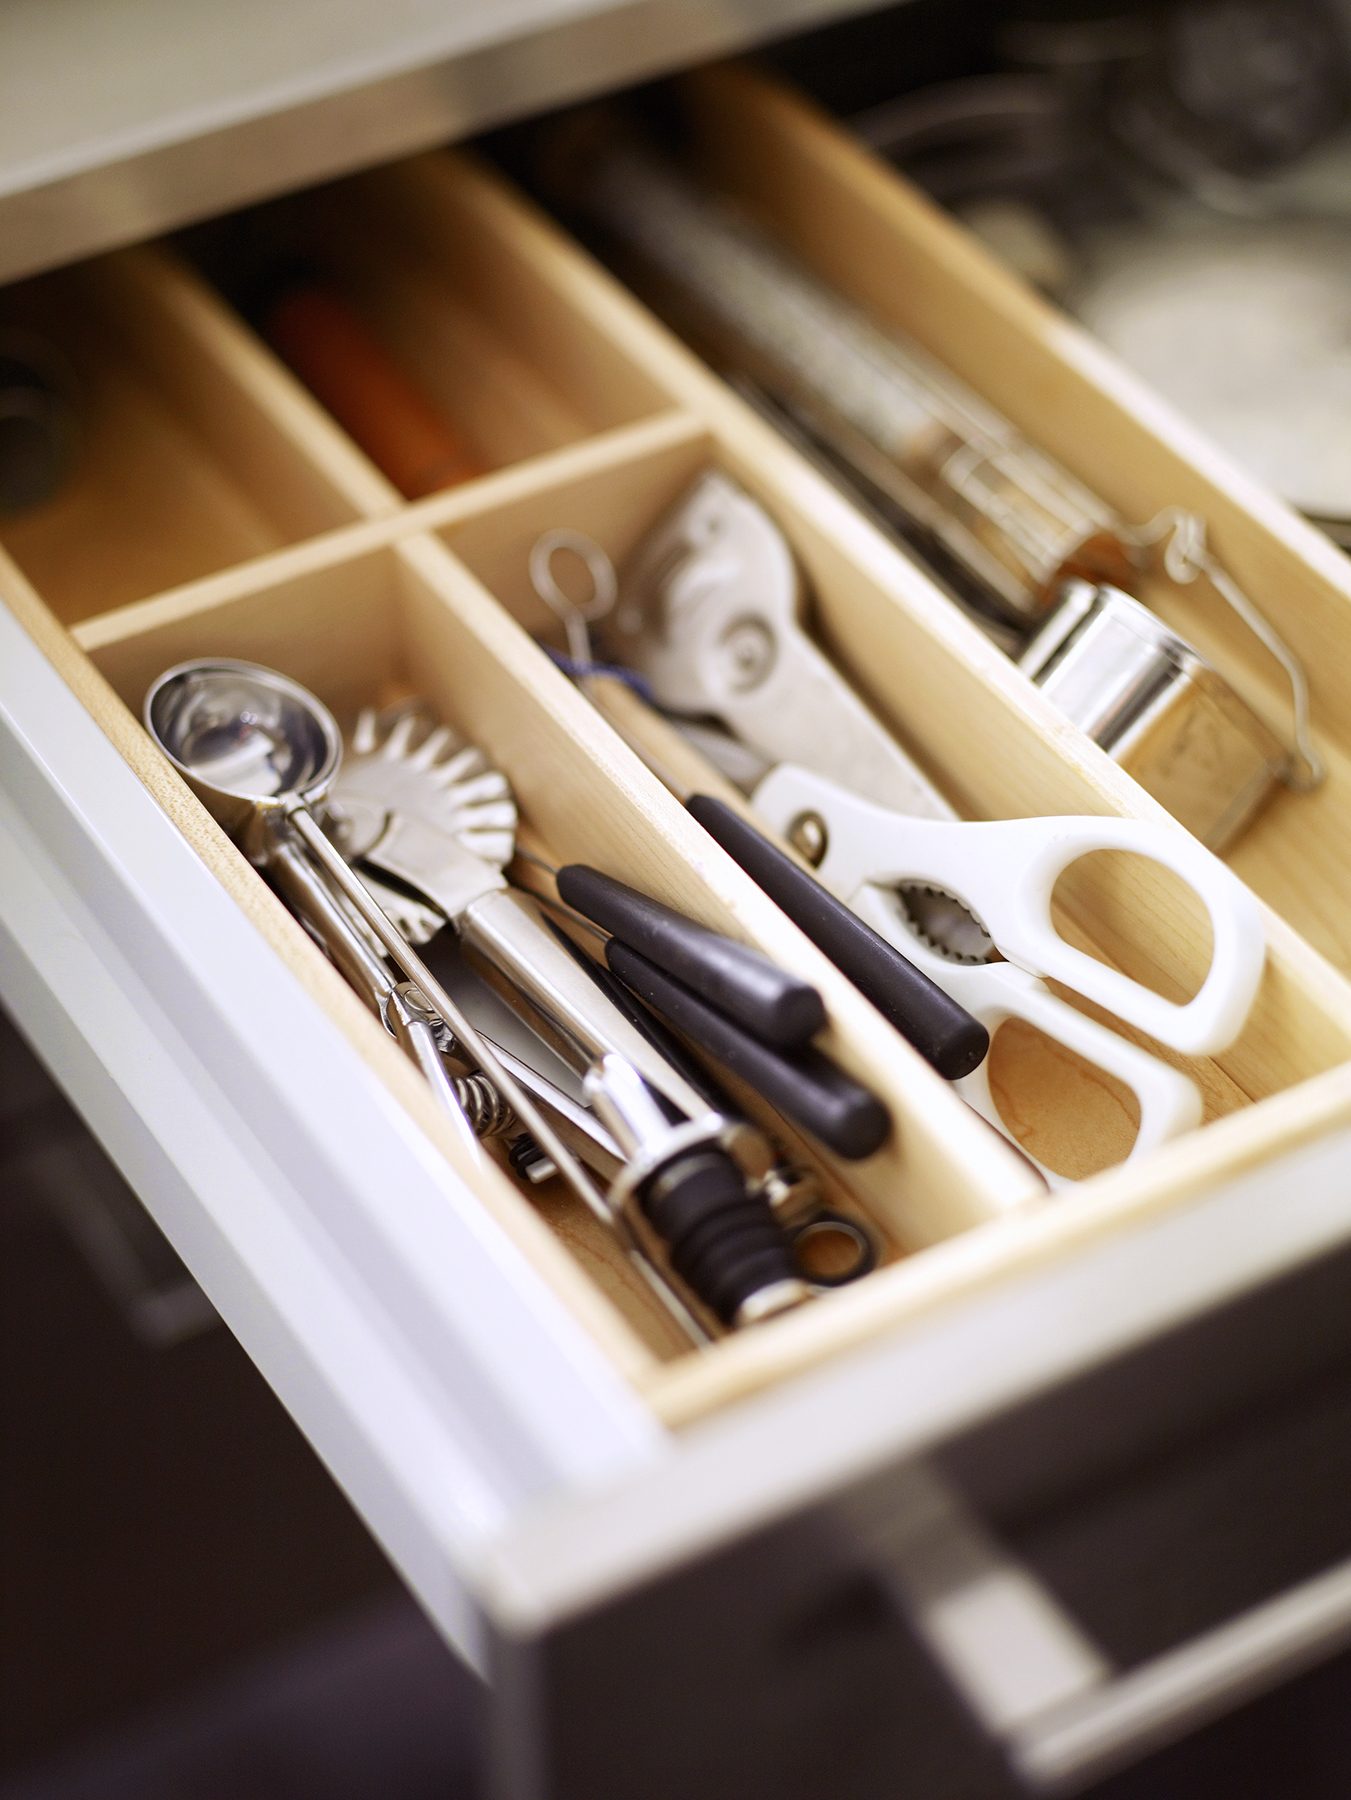 Utensil drawer